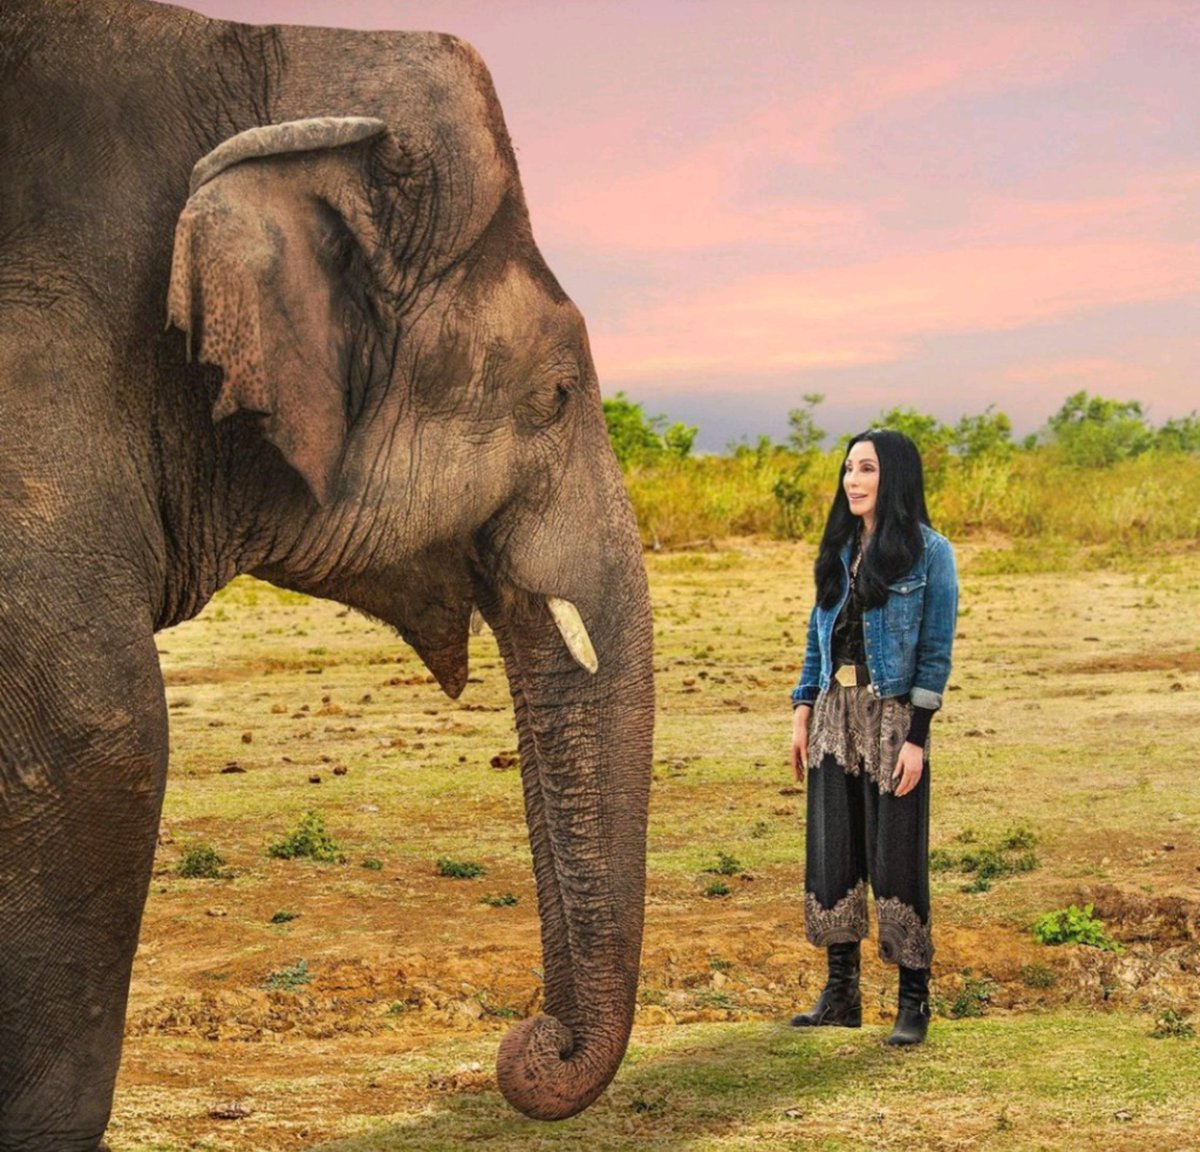 @cher This photo tells yours and Kaavans story❤️ A 4 year struggle to this. May we never forget this...A DREAM IS A WISH YOUR HEART MAKES🙏🏼 Dreams really do come true, dont they Babe🥰🐘💖